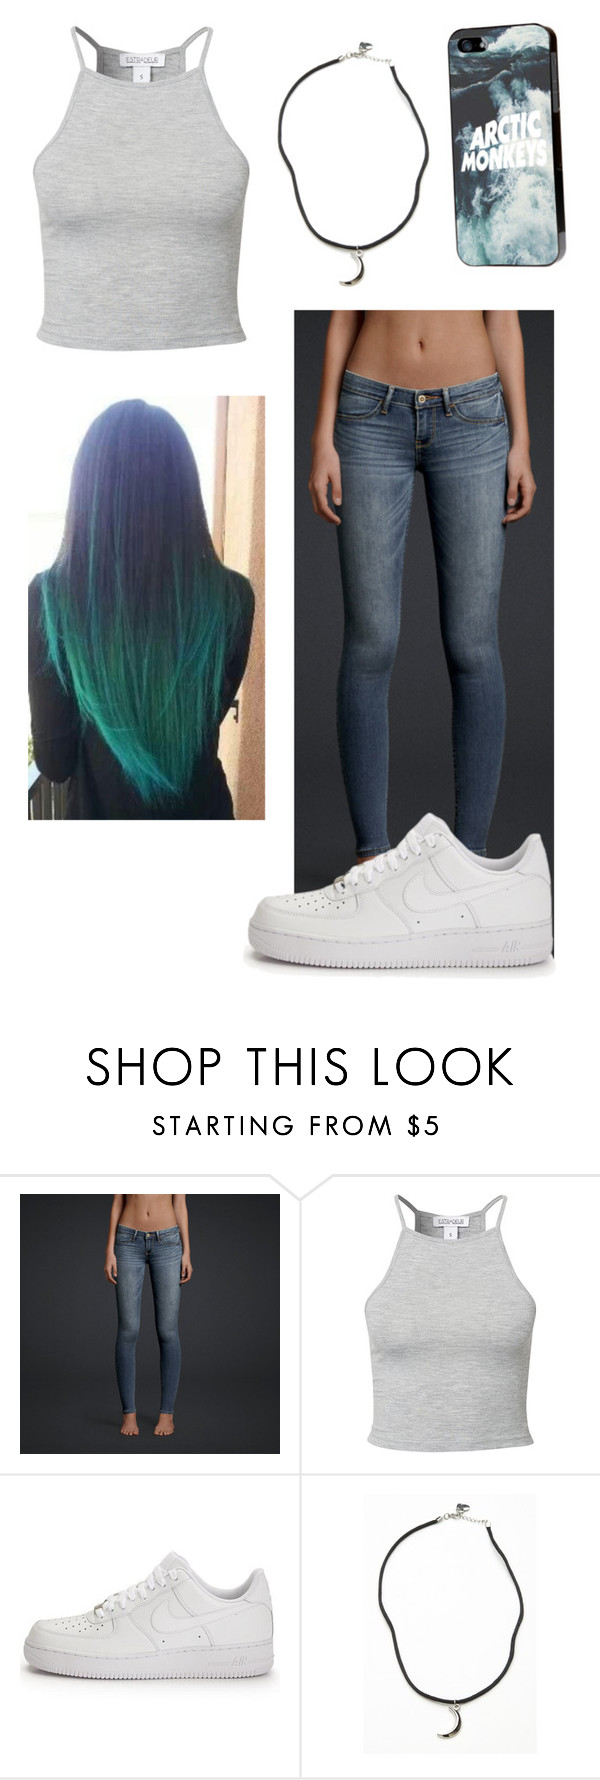 """""""Untitled #26"""" by anaiese ❤ liked on Polyvore featuring Hollister Co., Estradeur, NIKE and Brandy Melville"""